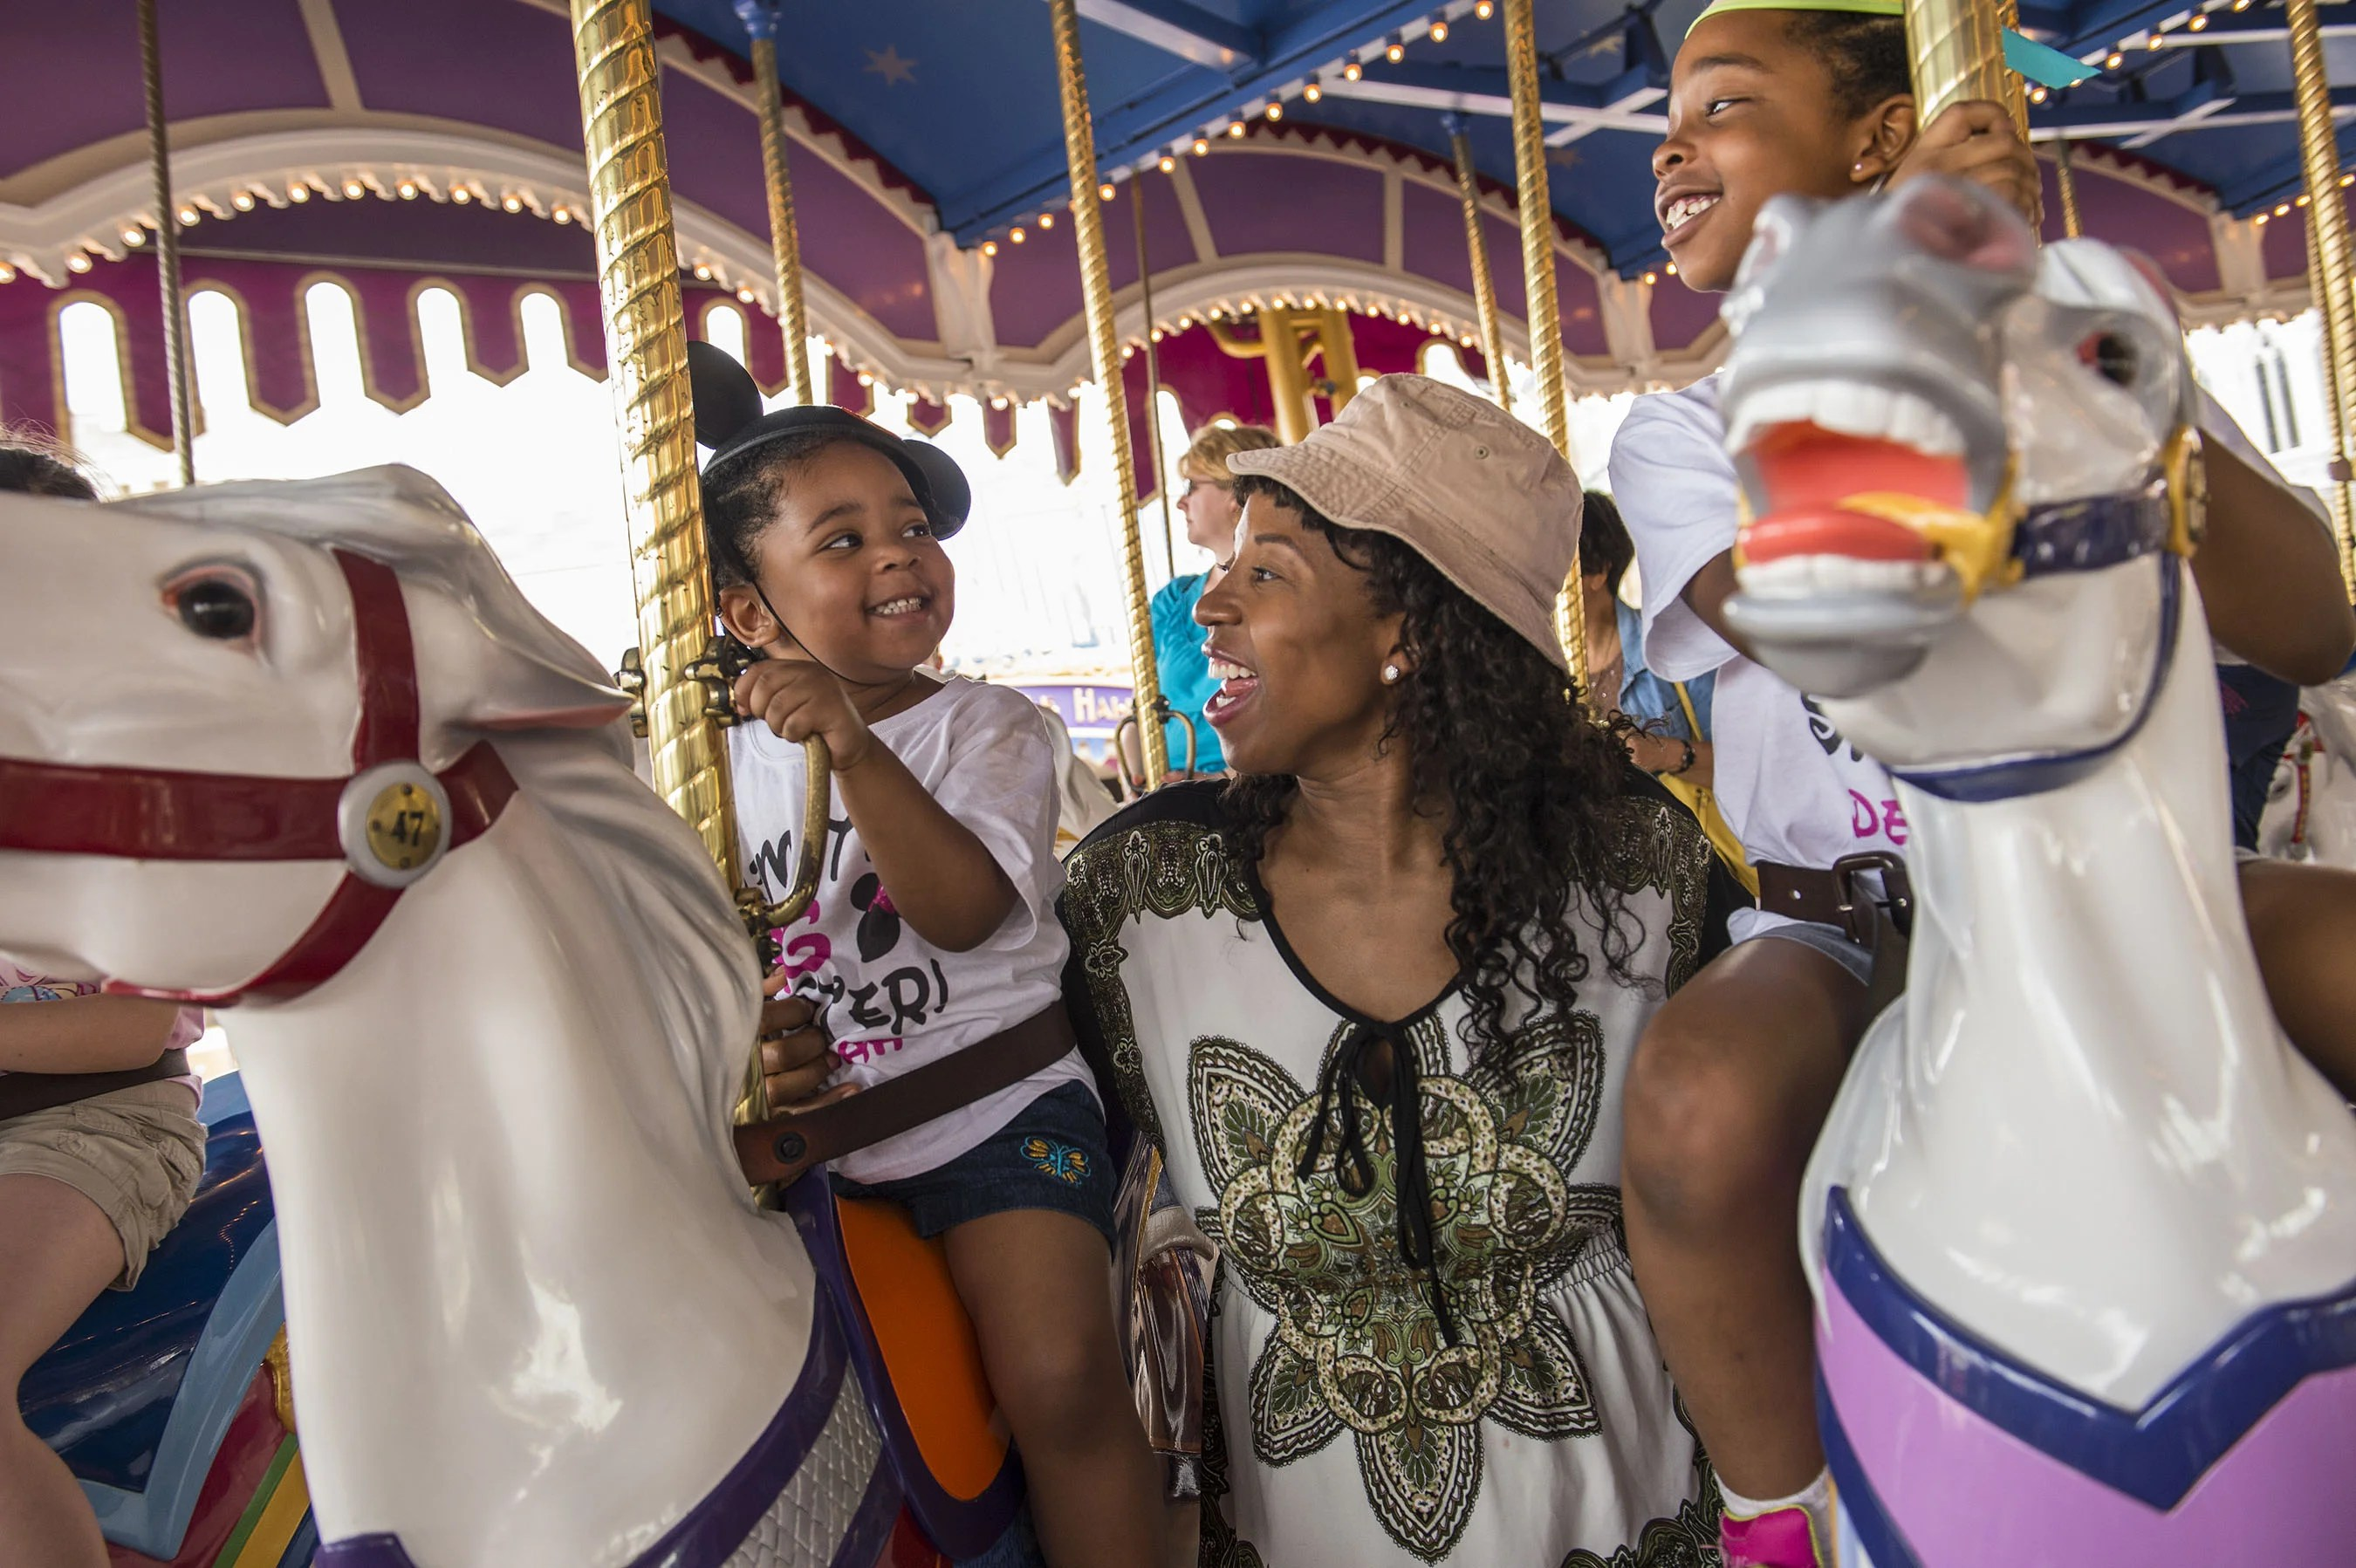 Fun with Little Ones on the Prince Charming Regal Carrousel